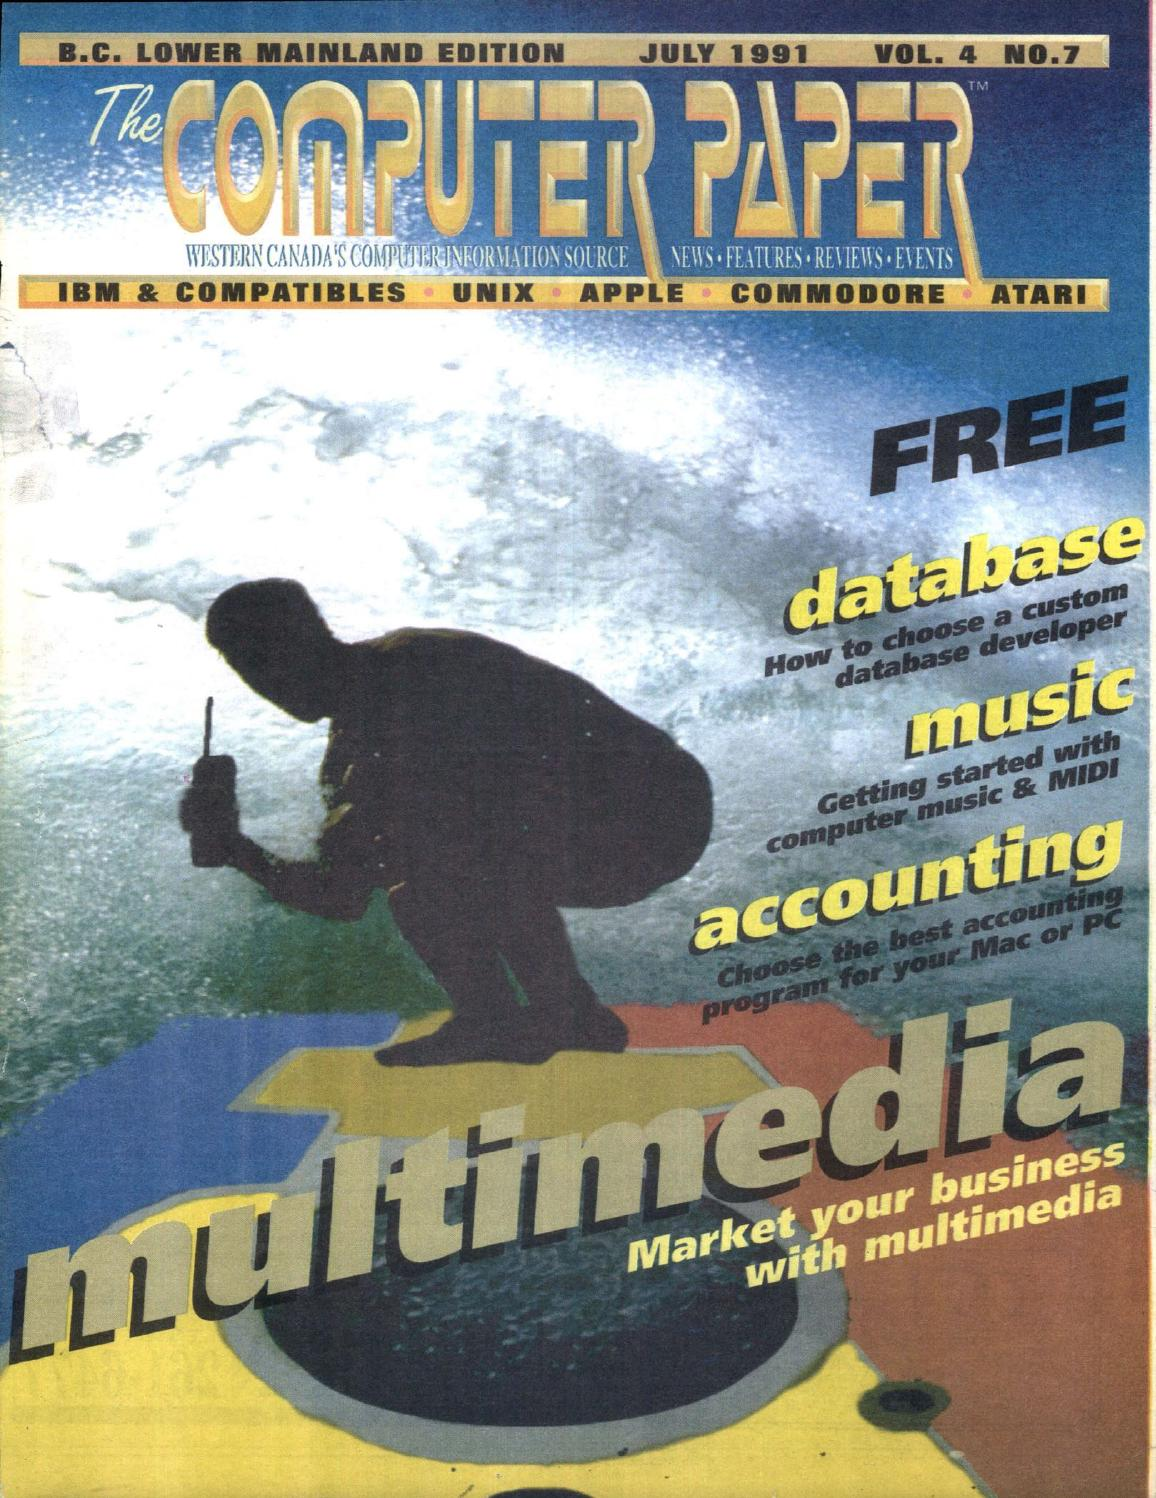 1991 07 The Computer Paper - BC Edition by The Computer Paper - issuu